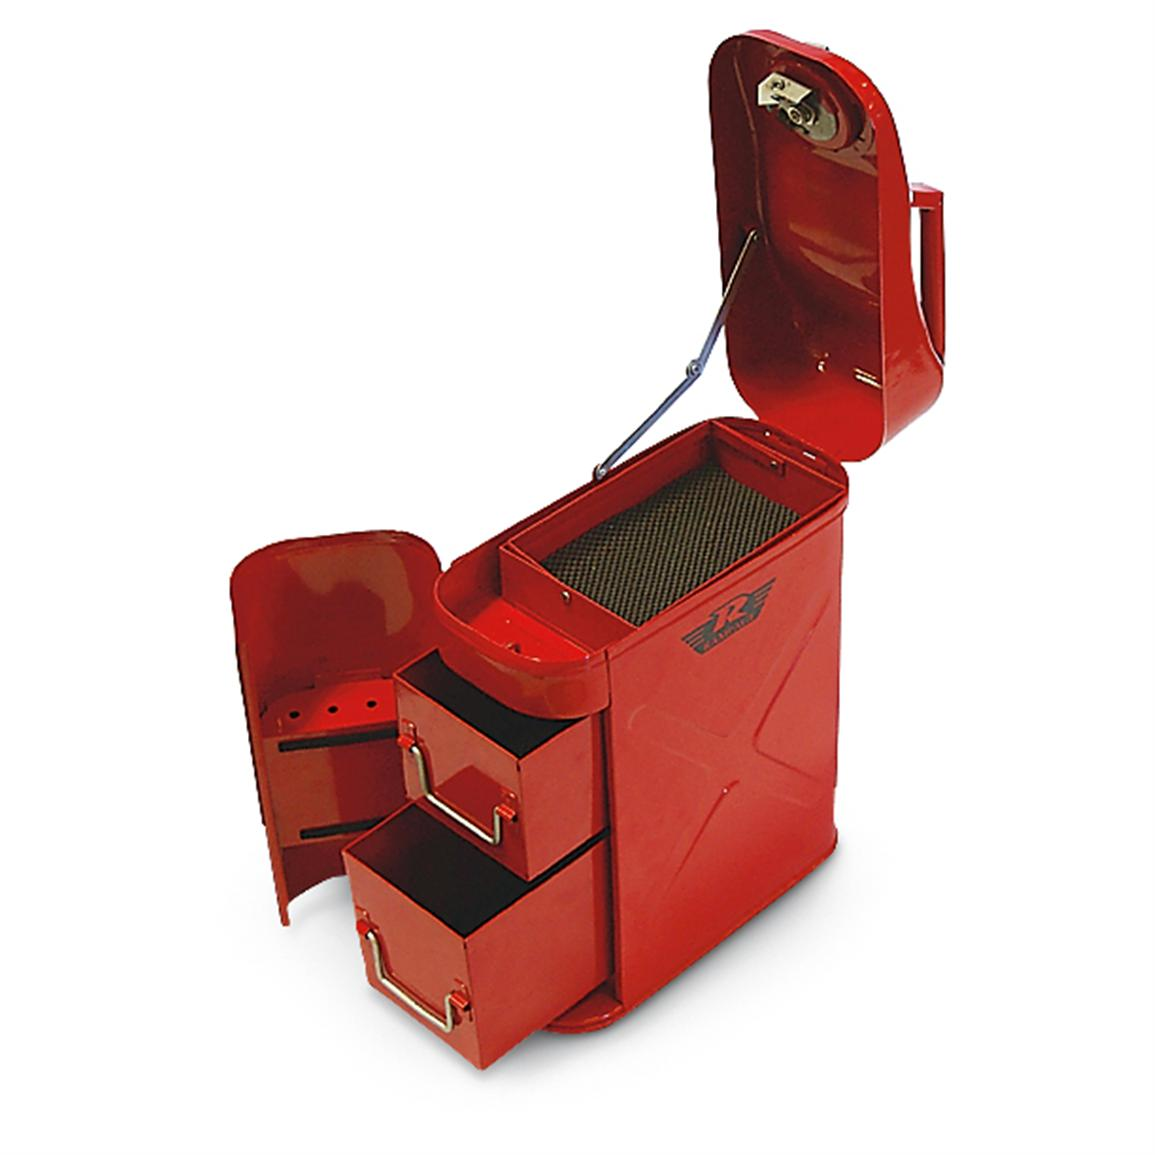 Trail Can / Utility Tool Box, Red